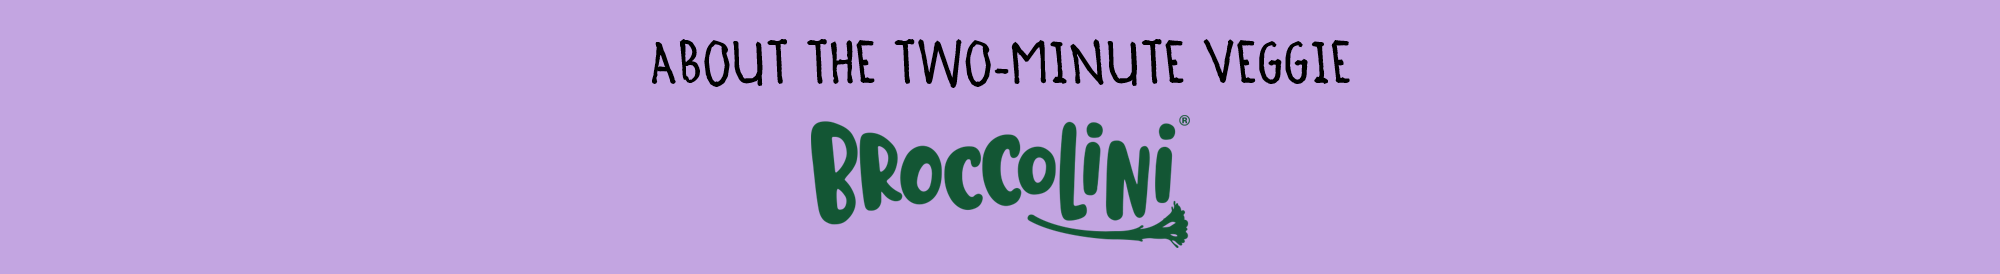 ABOUT THE TWO-MINUTE VEGGIE